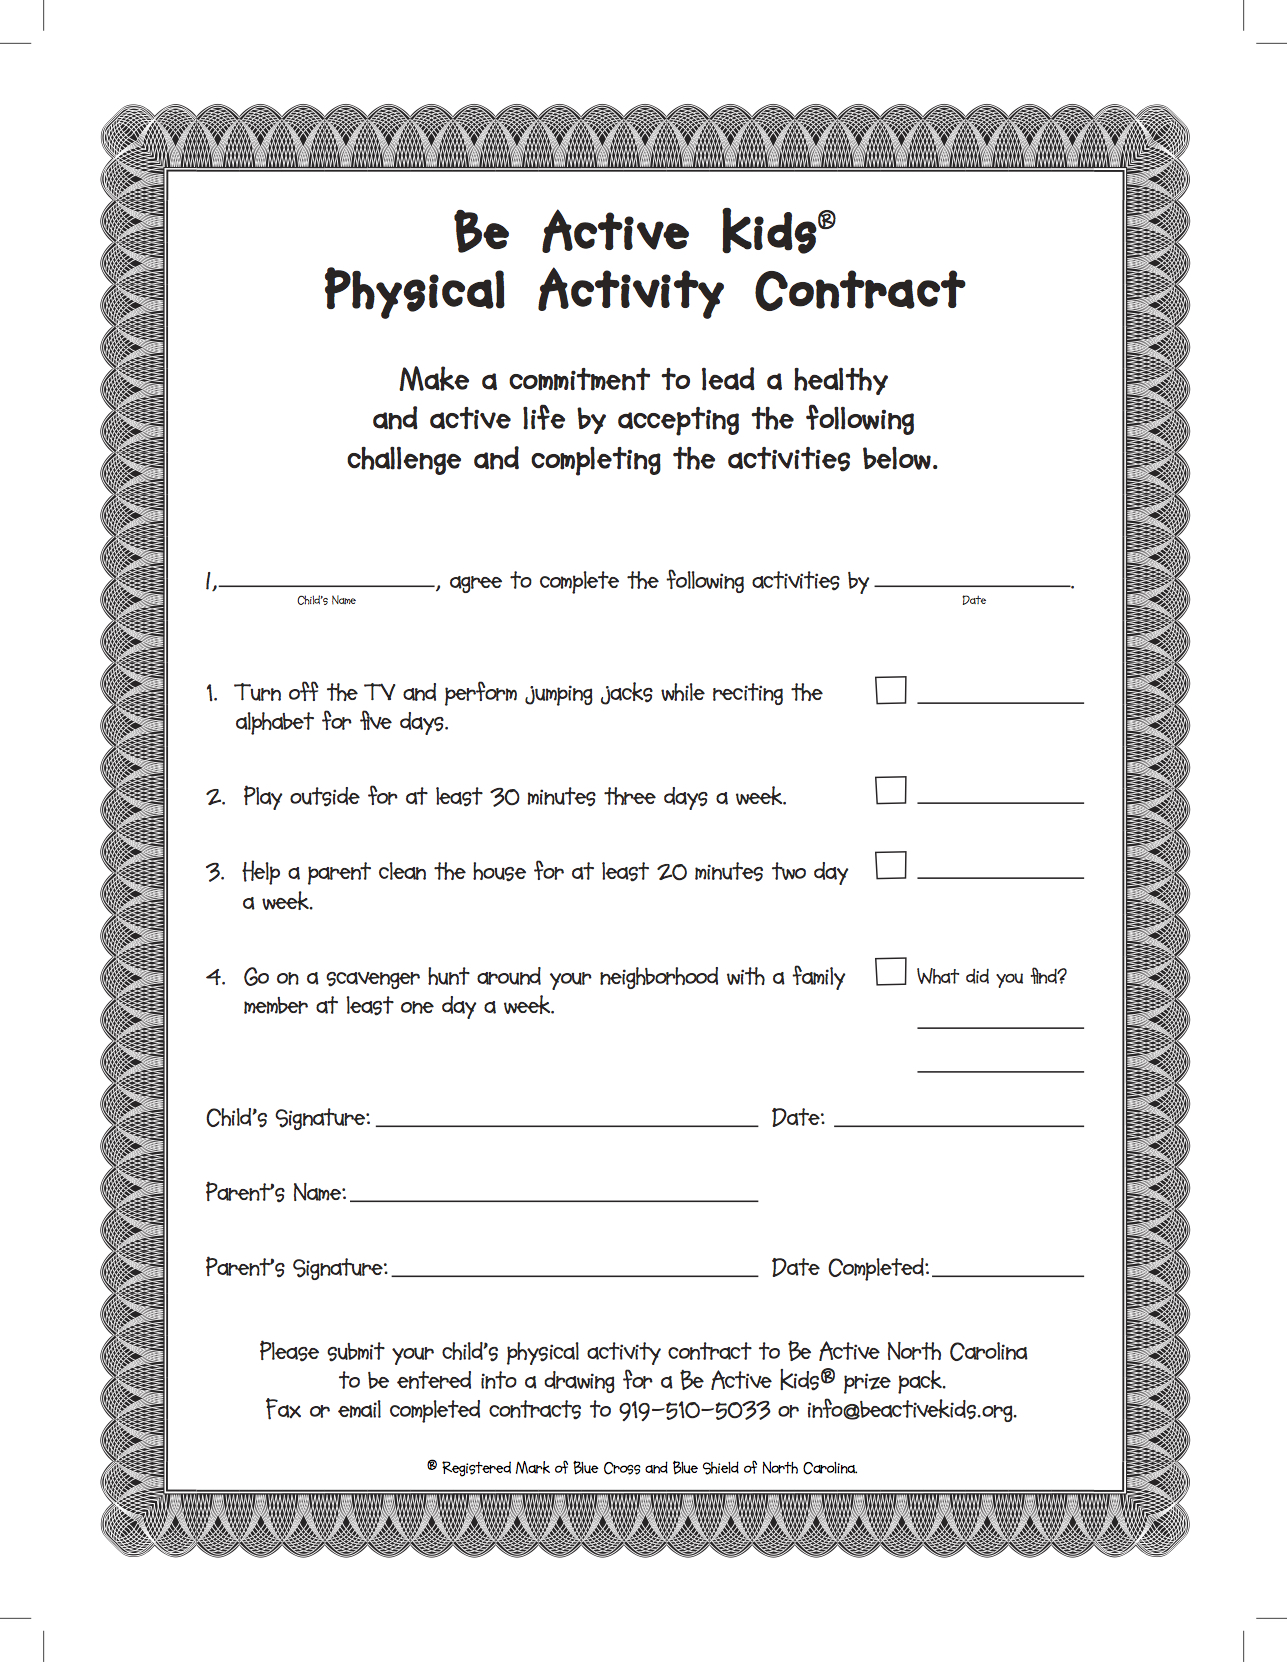 Be Active Kids - Contract